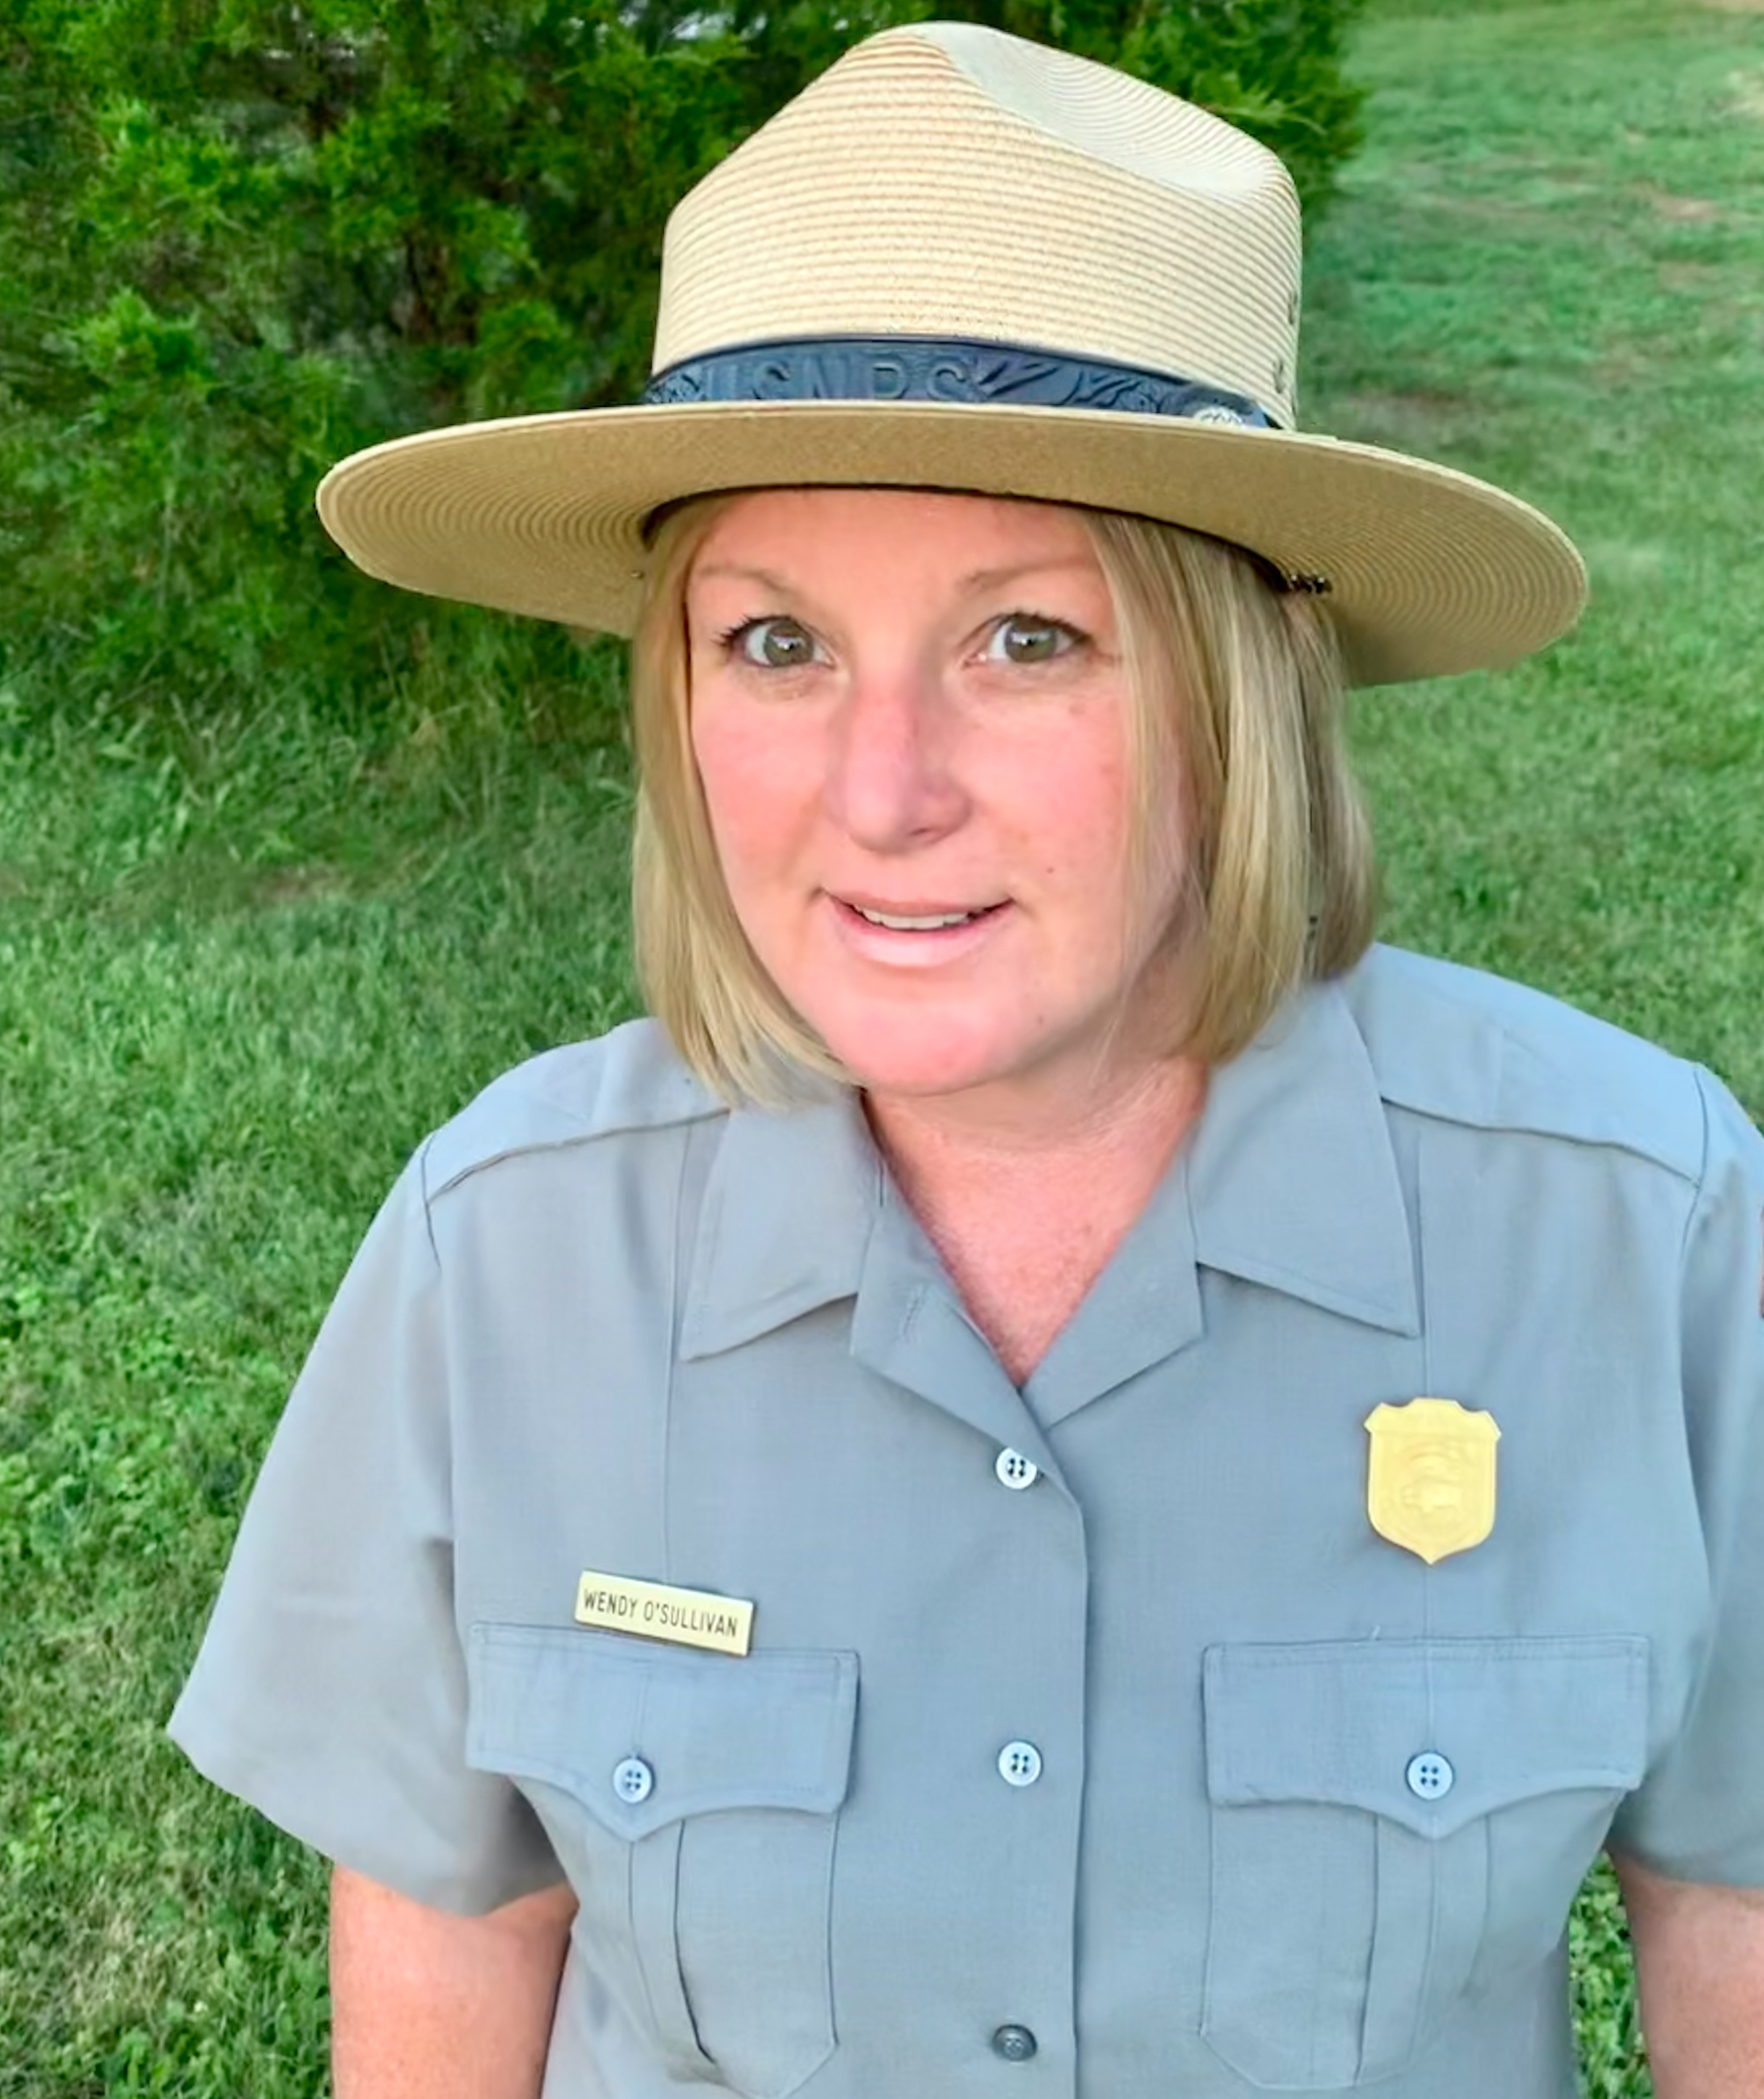 A woman in a National Park Service uniform